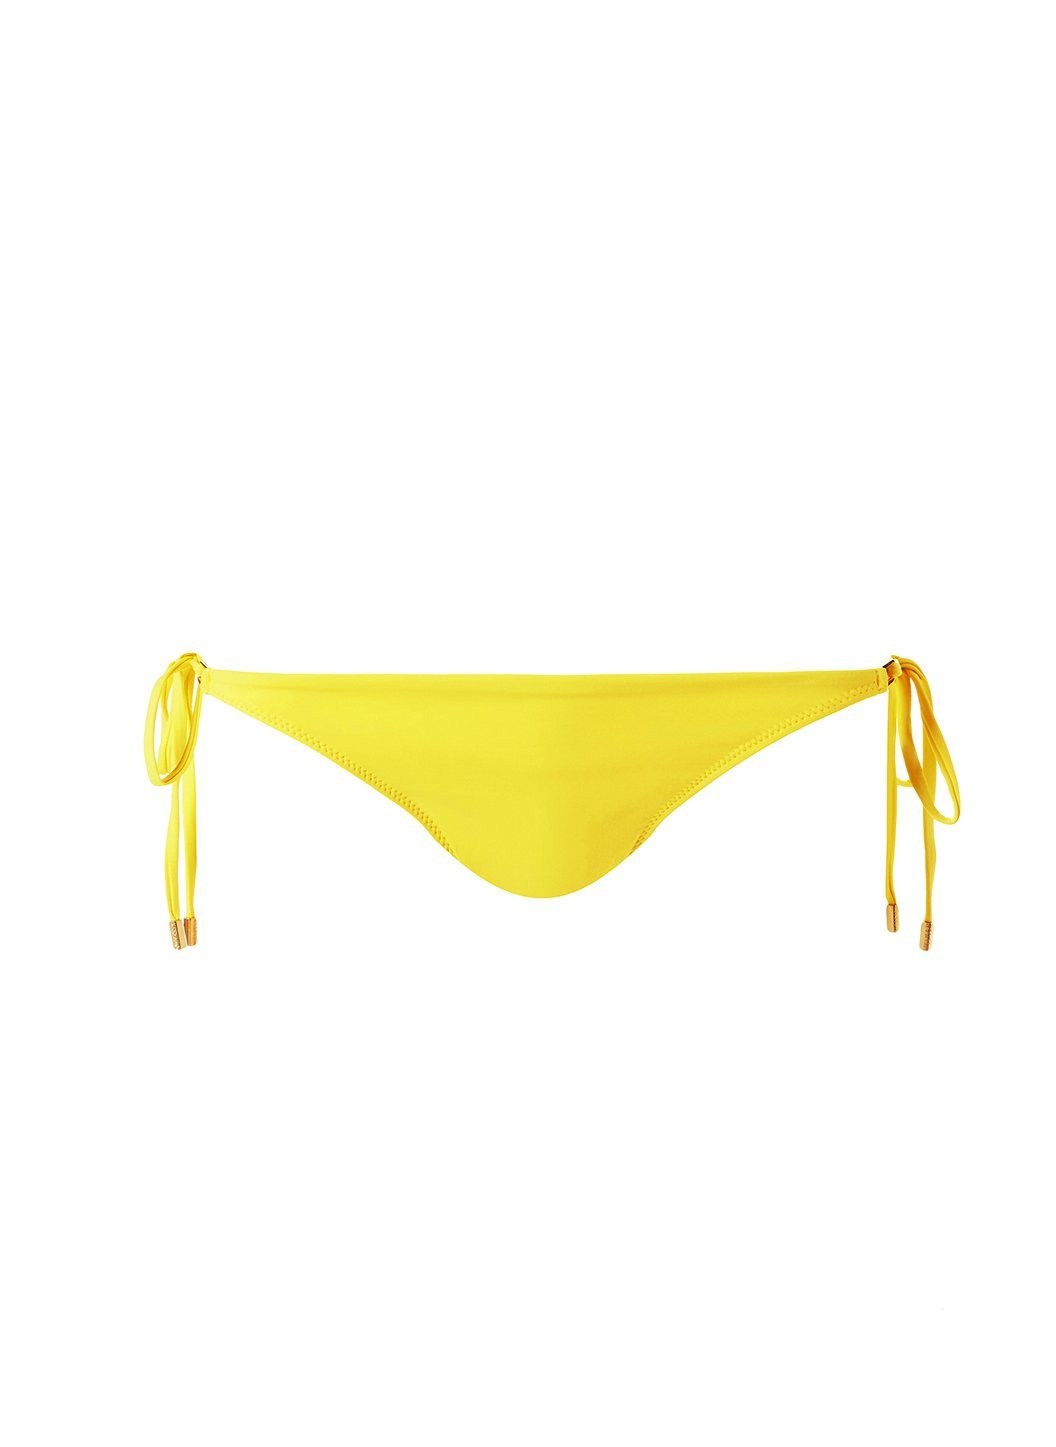 Cancun Lemon Bikini Bottom Cutout